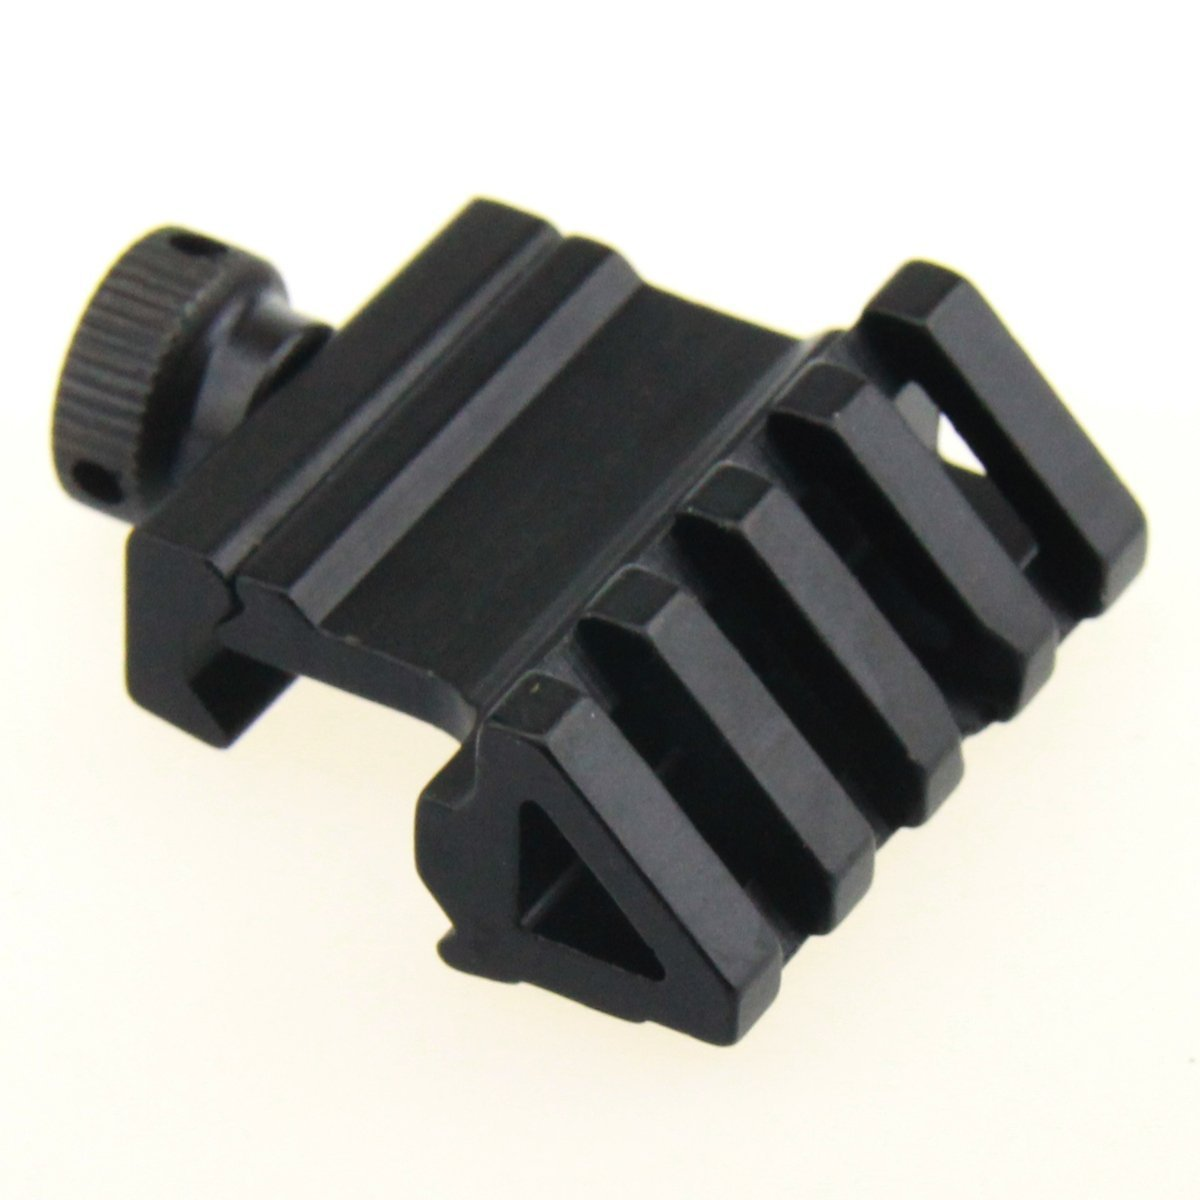 TACFUN Picatinny Style 45 Degree 4 Slots Offset Angle Rail Mount for Flashlight, Sight, RED Laser